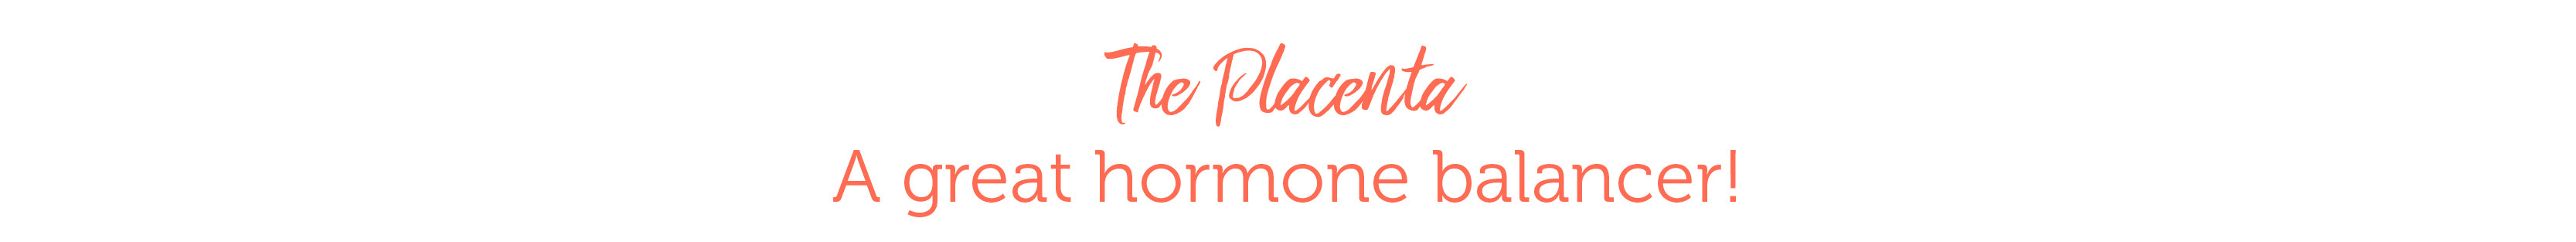 The Placenta: The great hormone balancer!